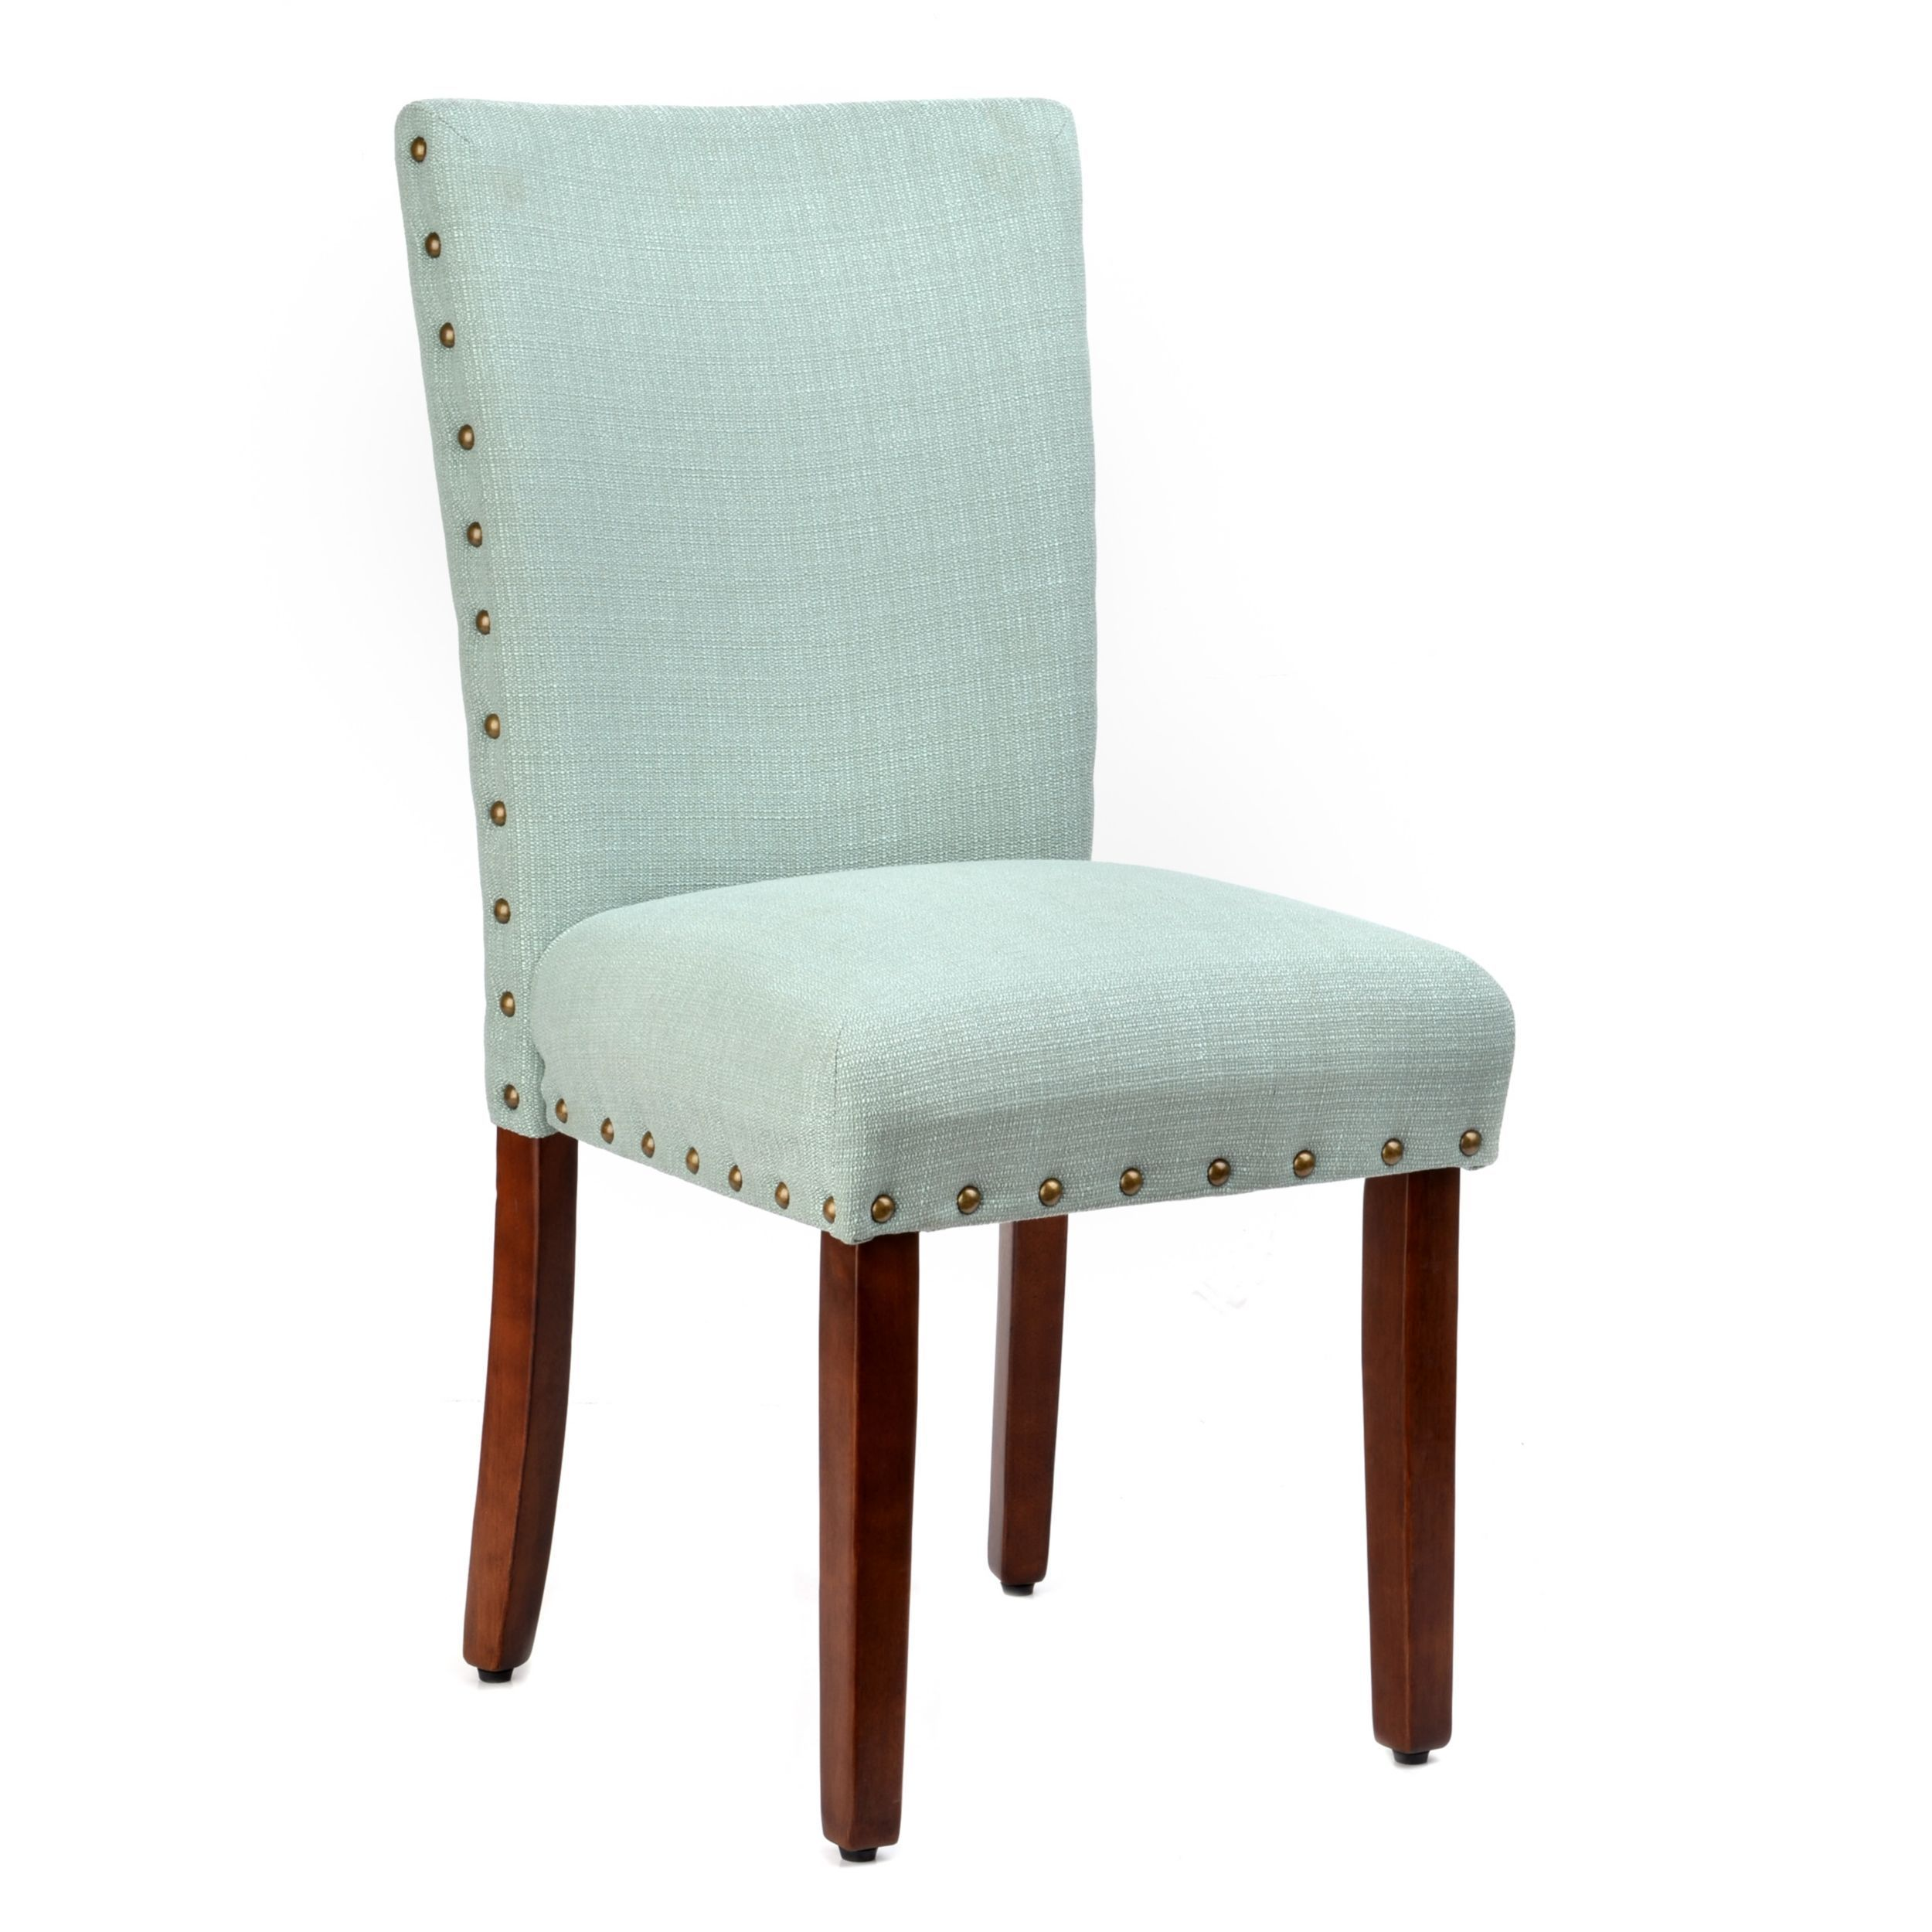 Copper Grove Kitchen & Dining Room Chairs For Less   Overstock